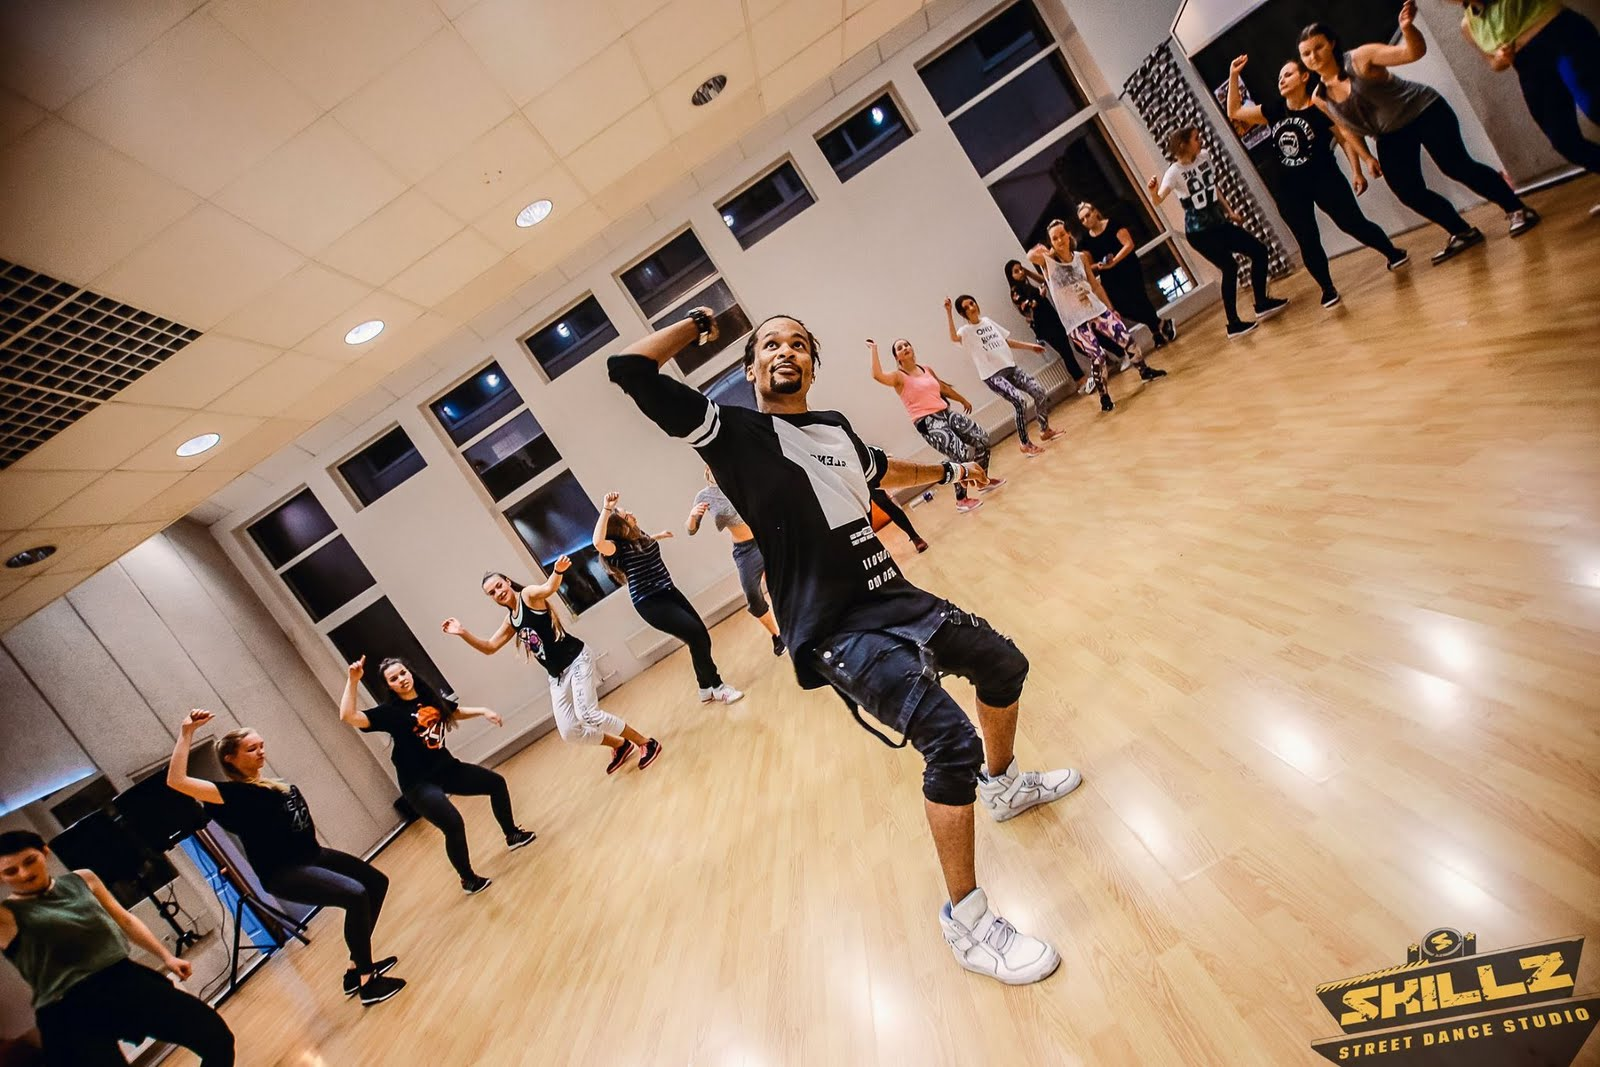 Dancehall workshop with Jiggy (France) - 47.jpg